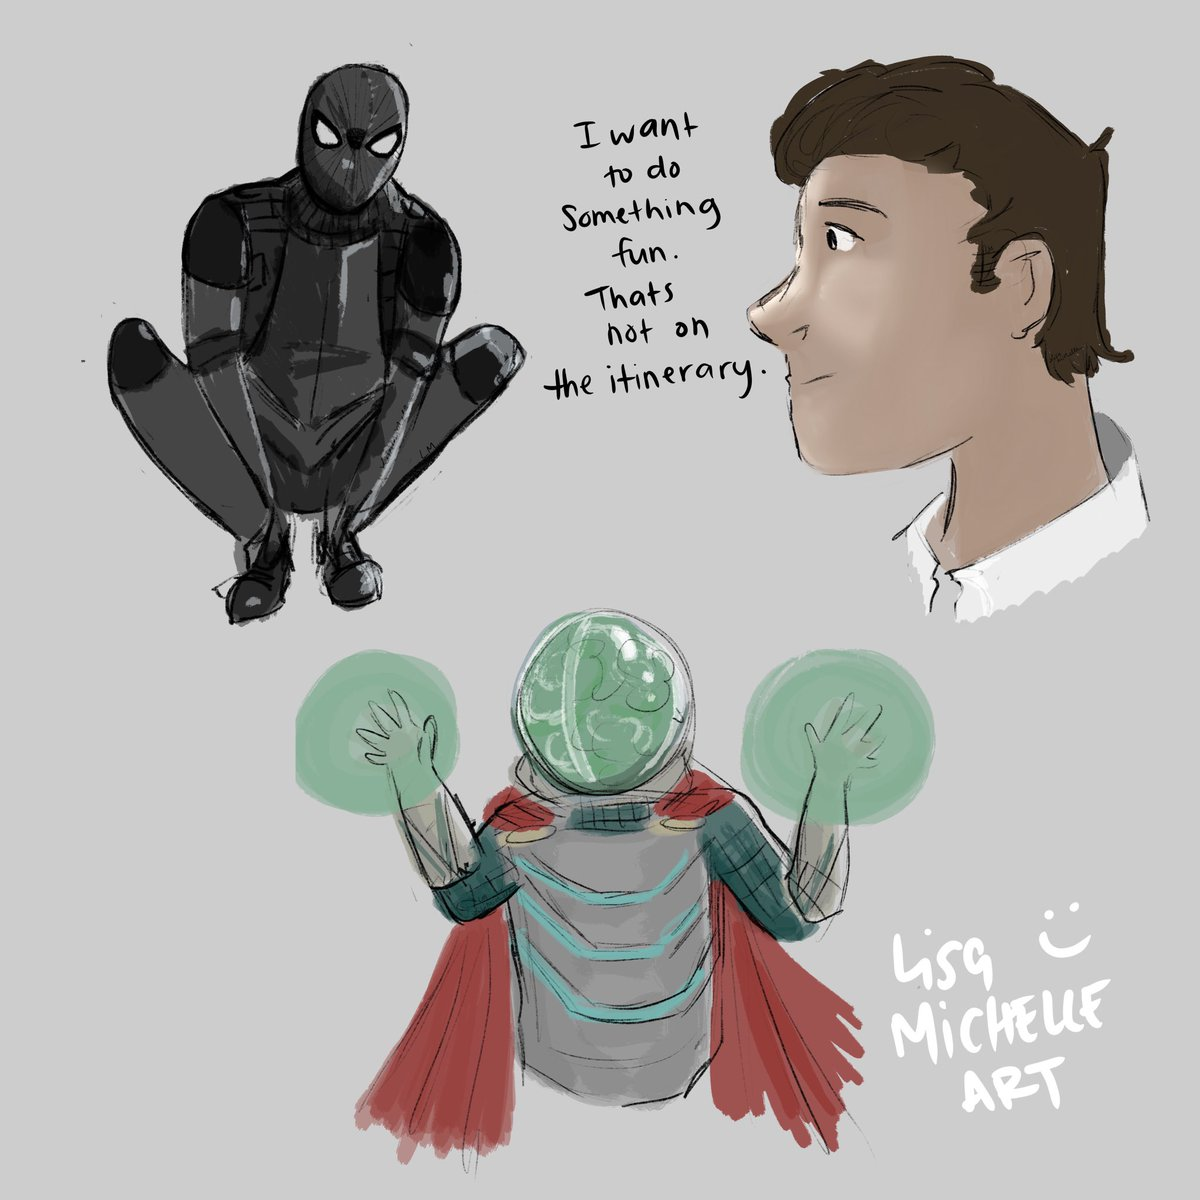 Some sketches I did while watching Spider-Man Far From Home. Eeeep I love this film! #spiderman #marvel #farfromhome #Spidermanfarfromhome #tomholland #jakegyllenhaal #mysterio #marvel #sketches #procreate #drawing #comicspic.twitter.com/OzpKW9fRdJ